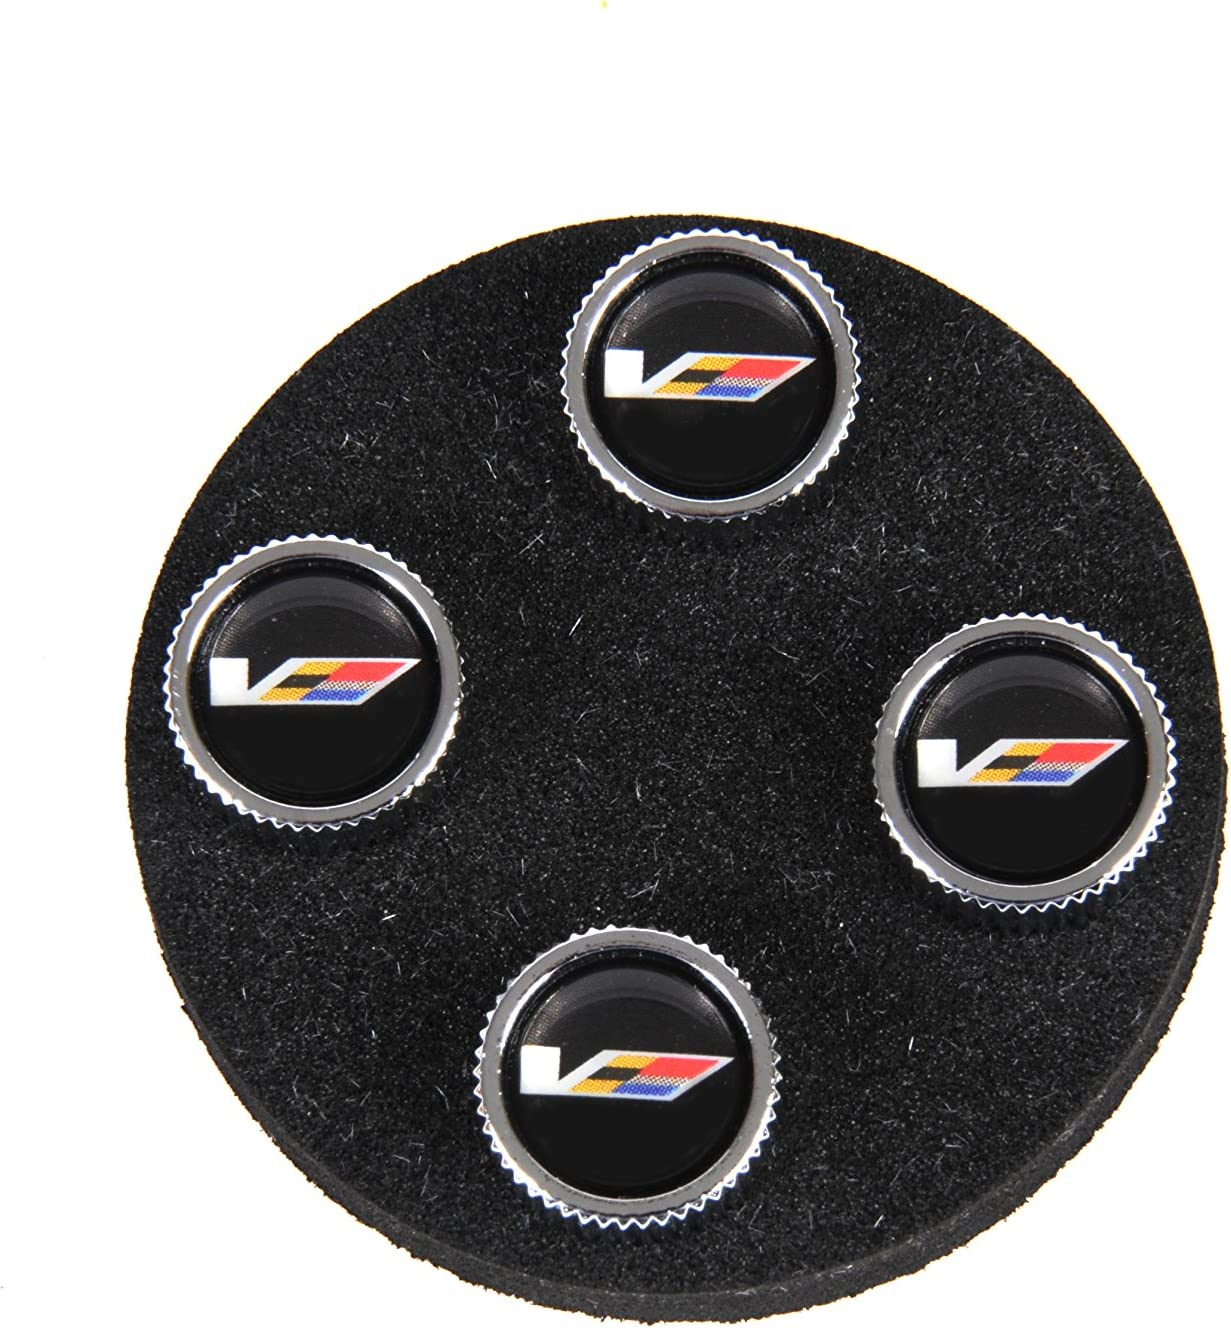 GM Accessories 22914361 Tire Valve Stem Caps in Black with V-Series Logo Pack of 4